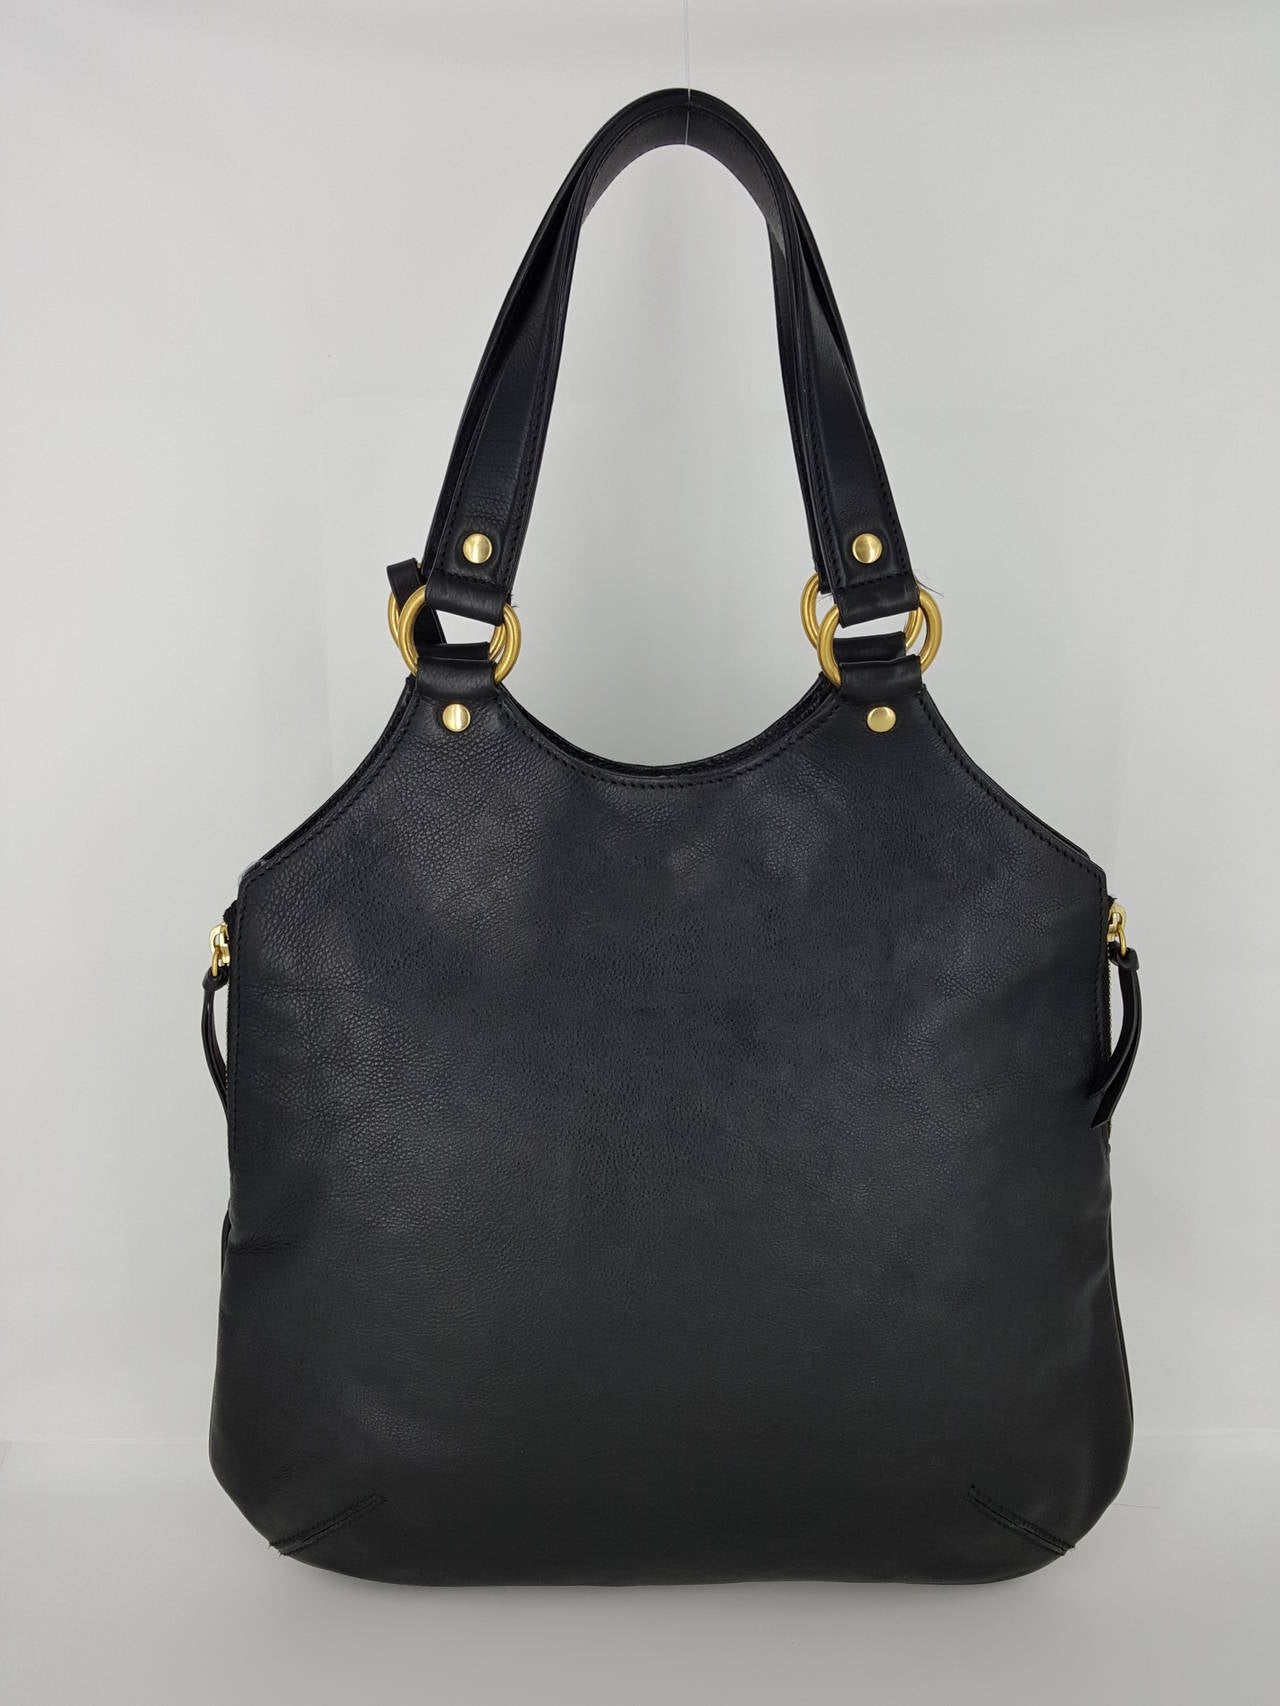 Offered for sale is this black leather YSL Yves Saint Laurent Tribute Bag.  This is done in beautiful black leather and has a YSL Hang tag  logo adornment, dual handles, button closure, and 2 side zippers.  The interior is black satin with 1